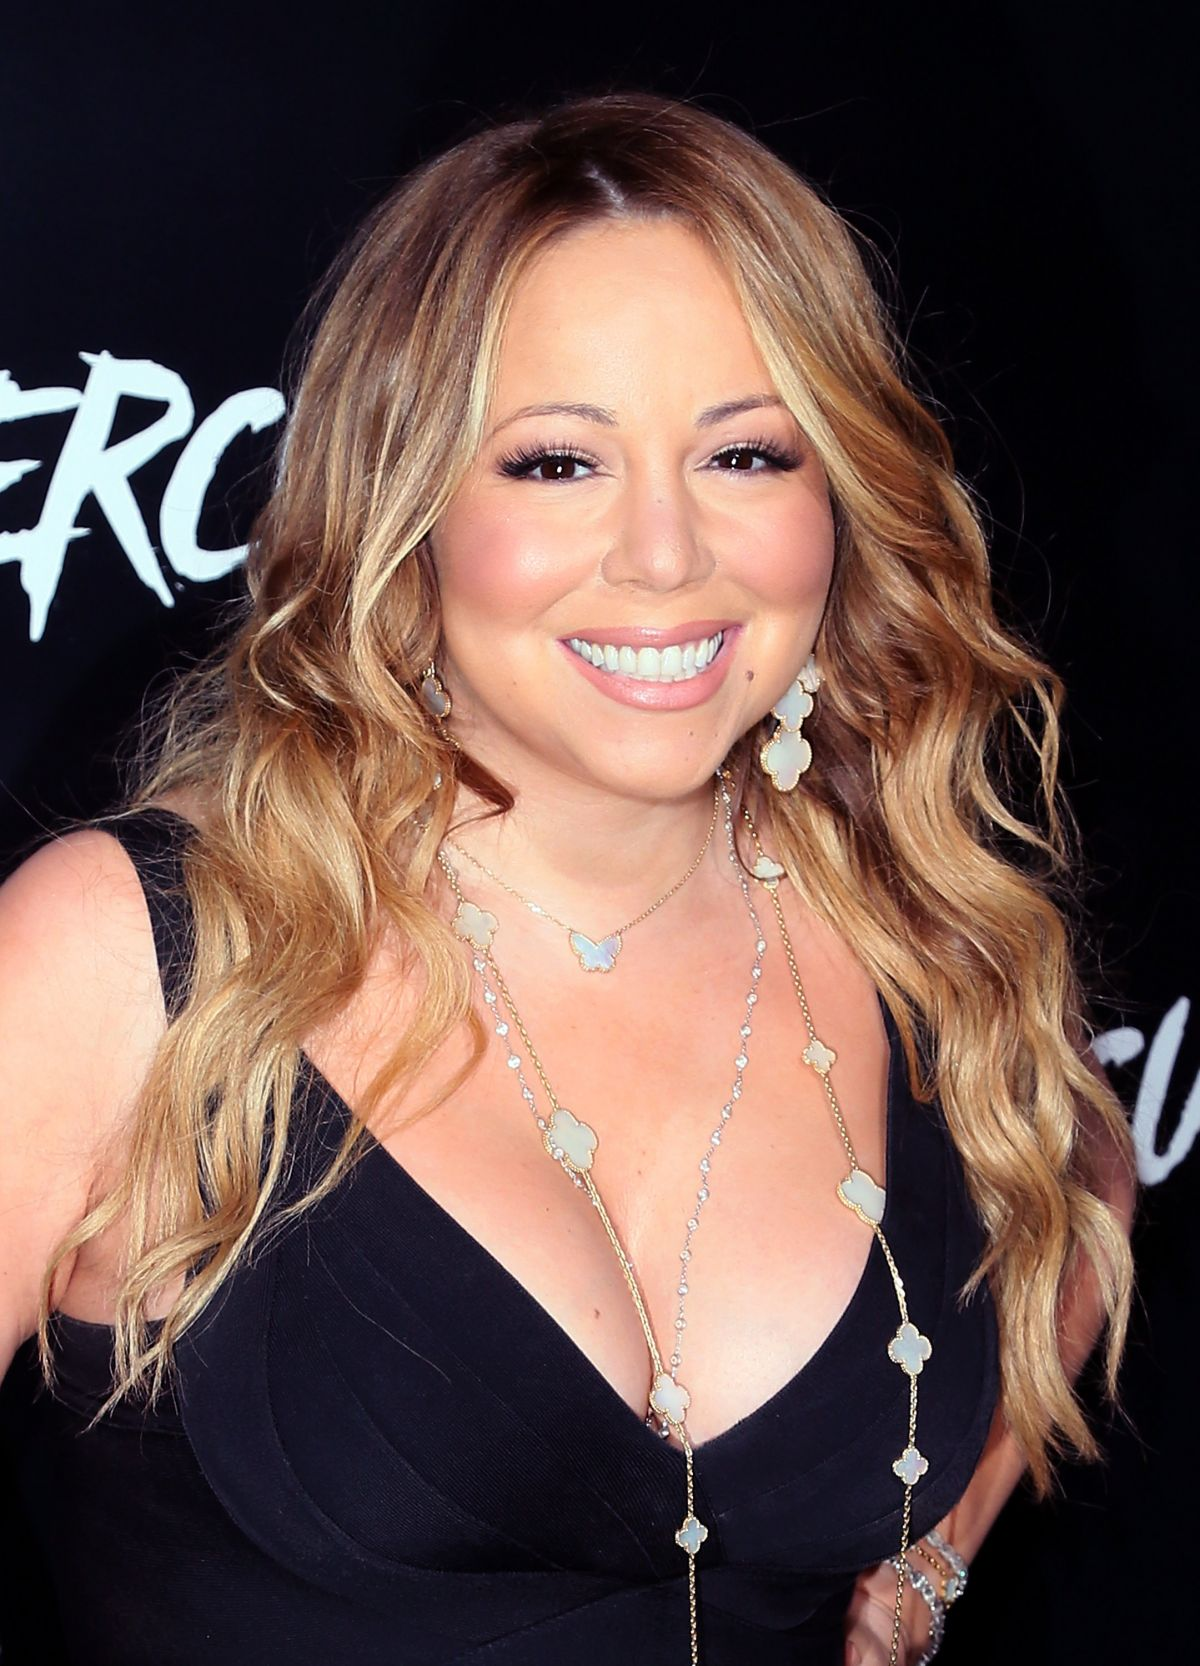 MARIAH CAREY at Hercules Premiere in Los Angeles - HawtCelebs